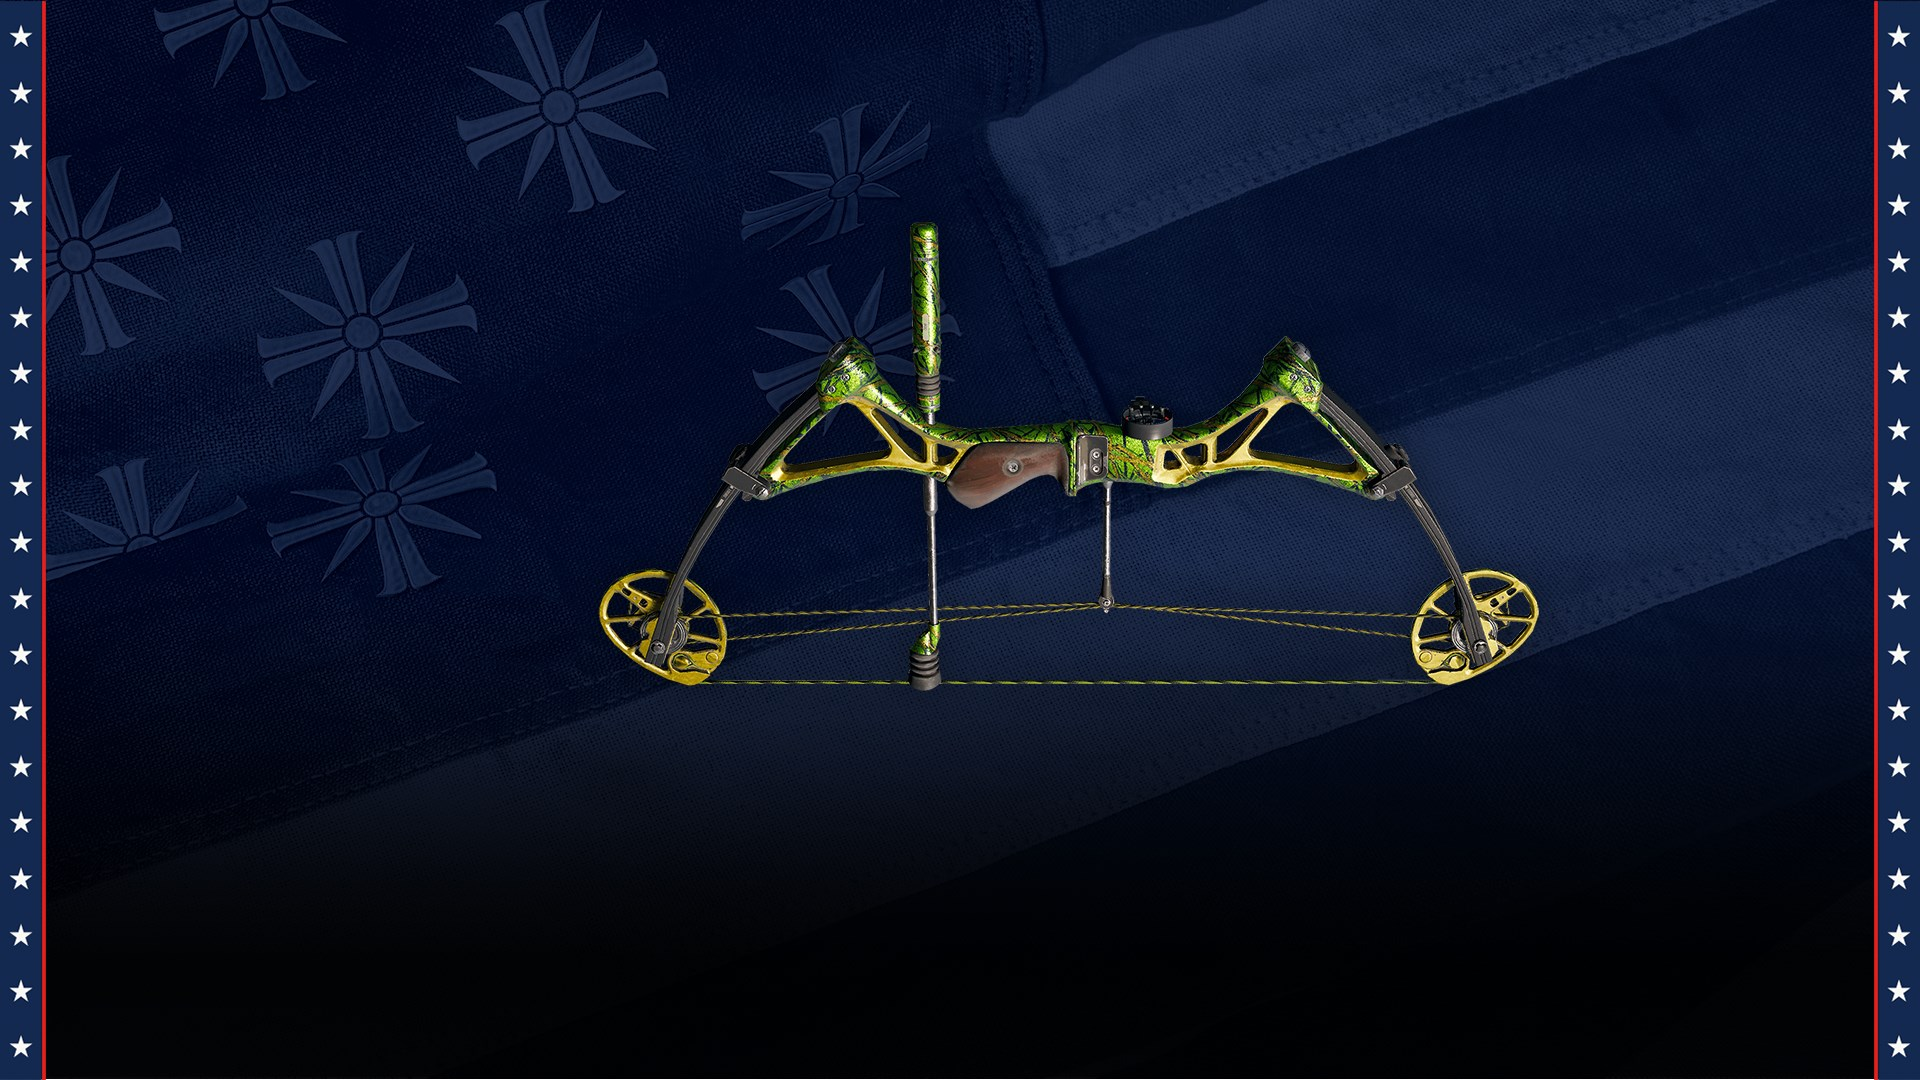 FAR CRY 5 - Compound Bow with Big Game Hunter Skin